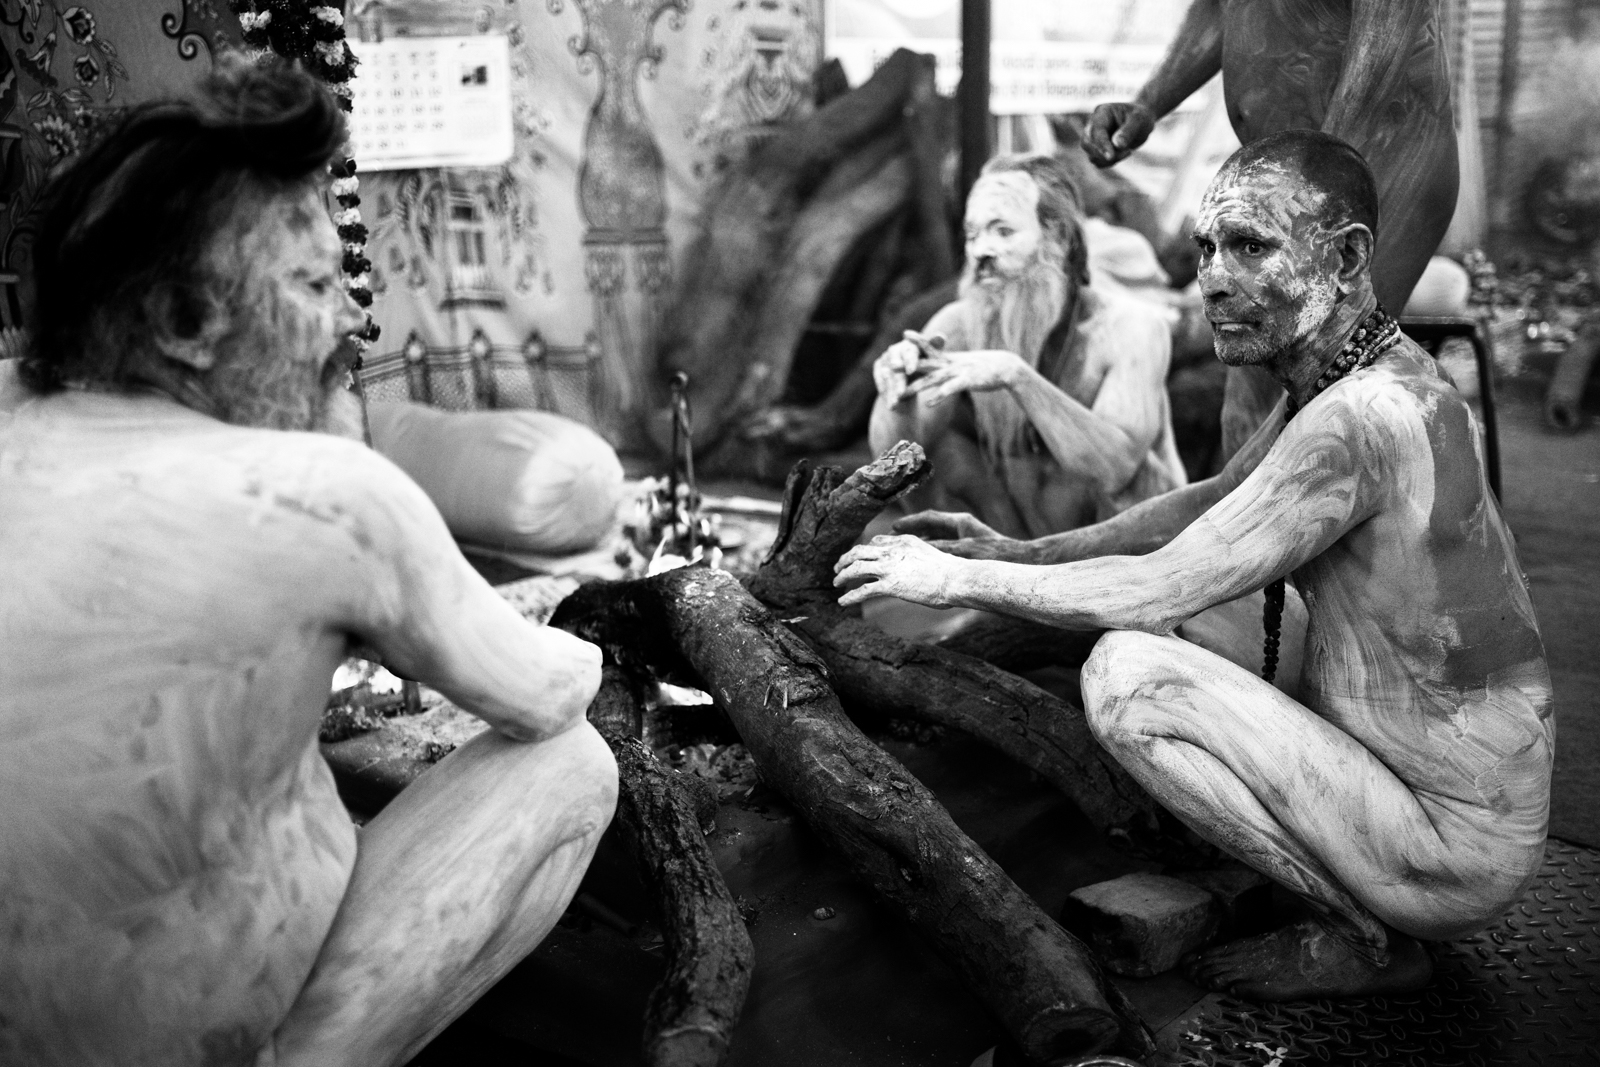 © Ayash Basu. Ash-smeared Naga sadhus warming up for morning prayers at 3 a.m. Historically, Nagas have been fearsome warriors, defending key Hindu temples and cities from Mughal attacks.